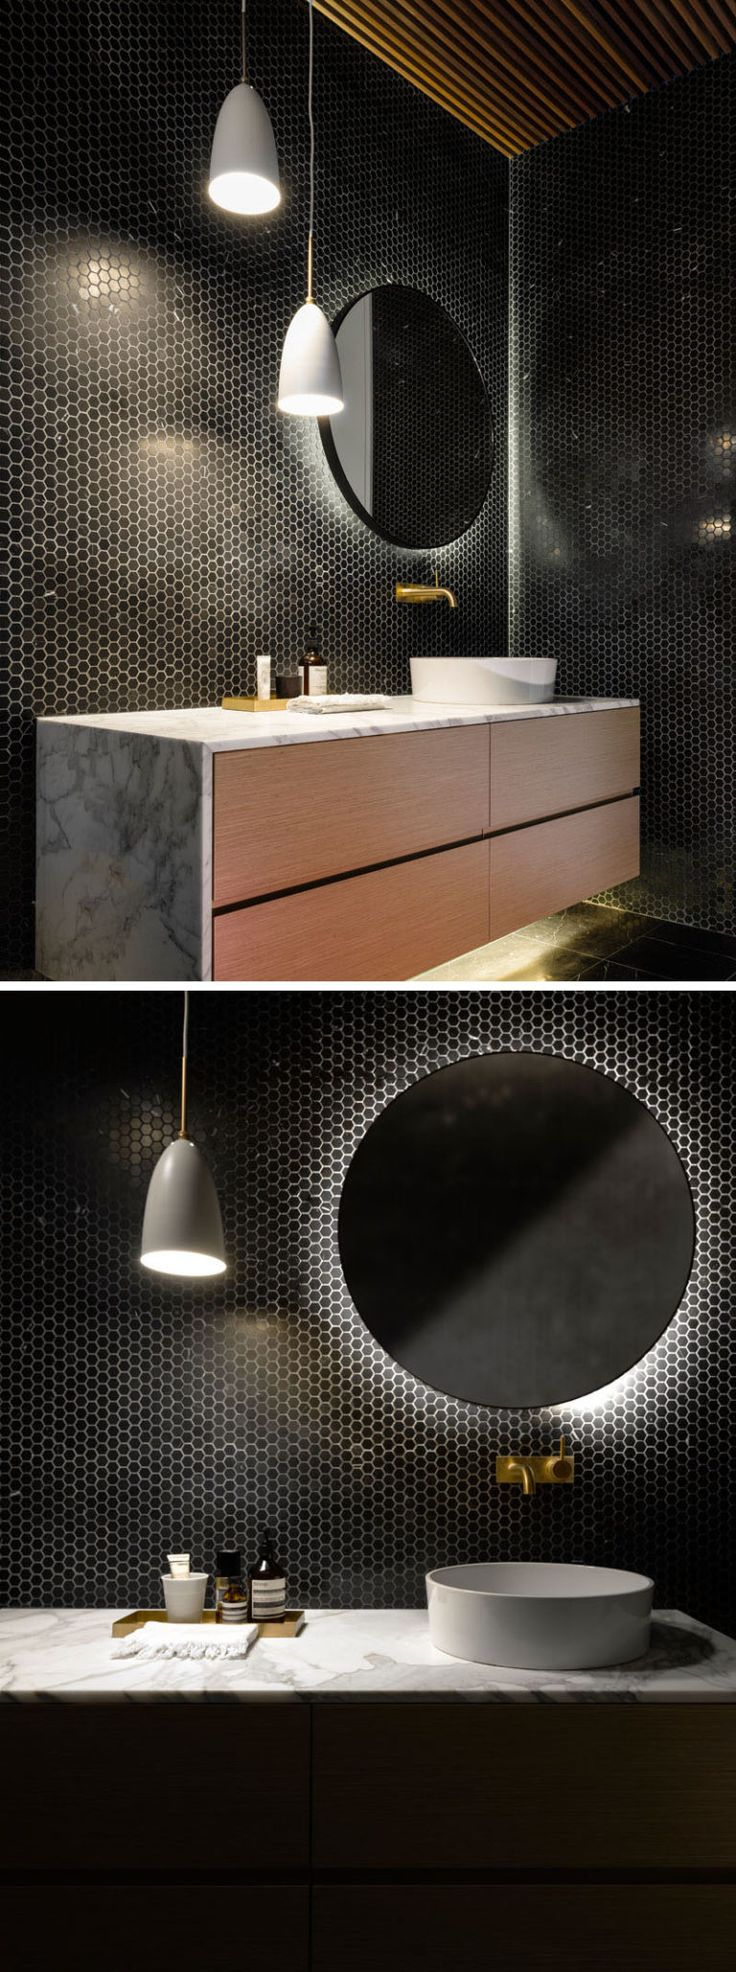 Contemporary condo bath modern bathroom chicago by jill jordan - This Bathroom Has Its Walls Covered In Tiny Black Hexagonal Tiles And The Vanity And